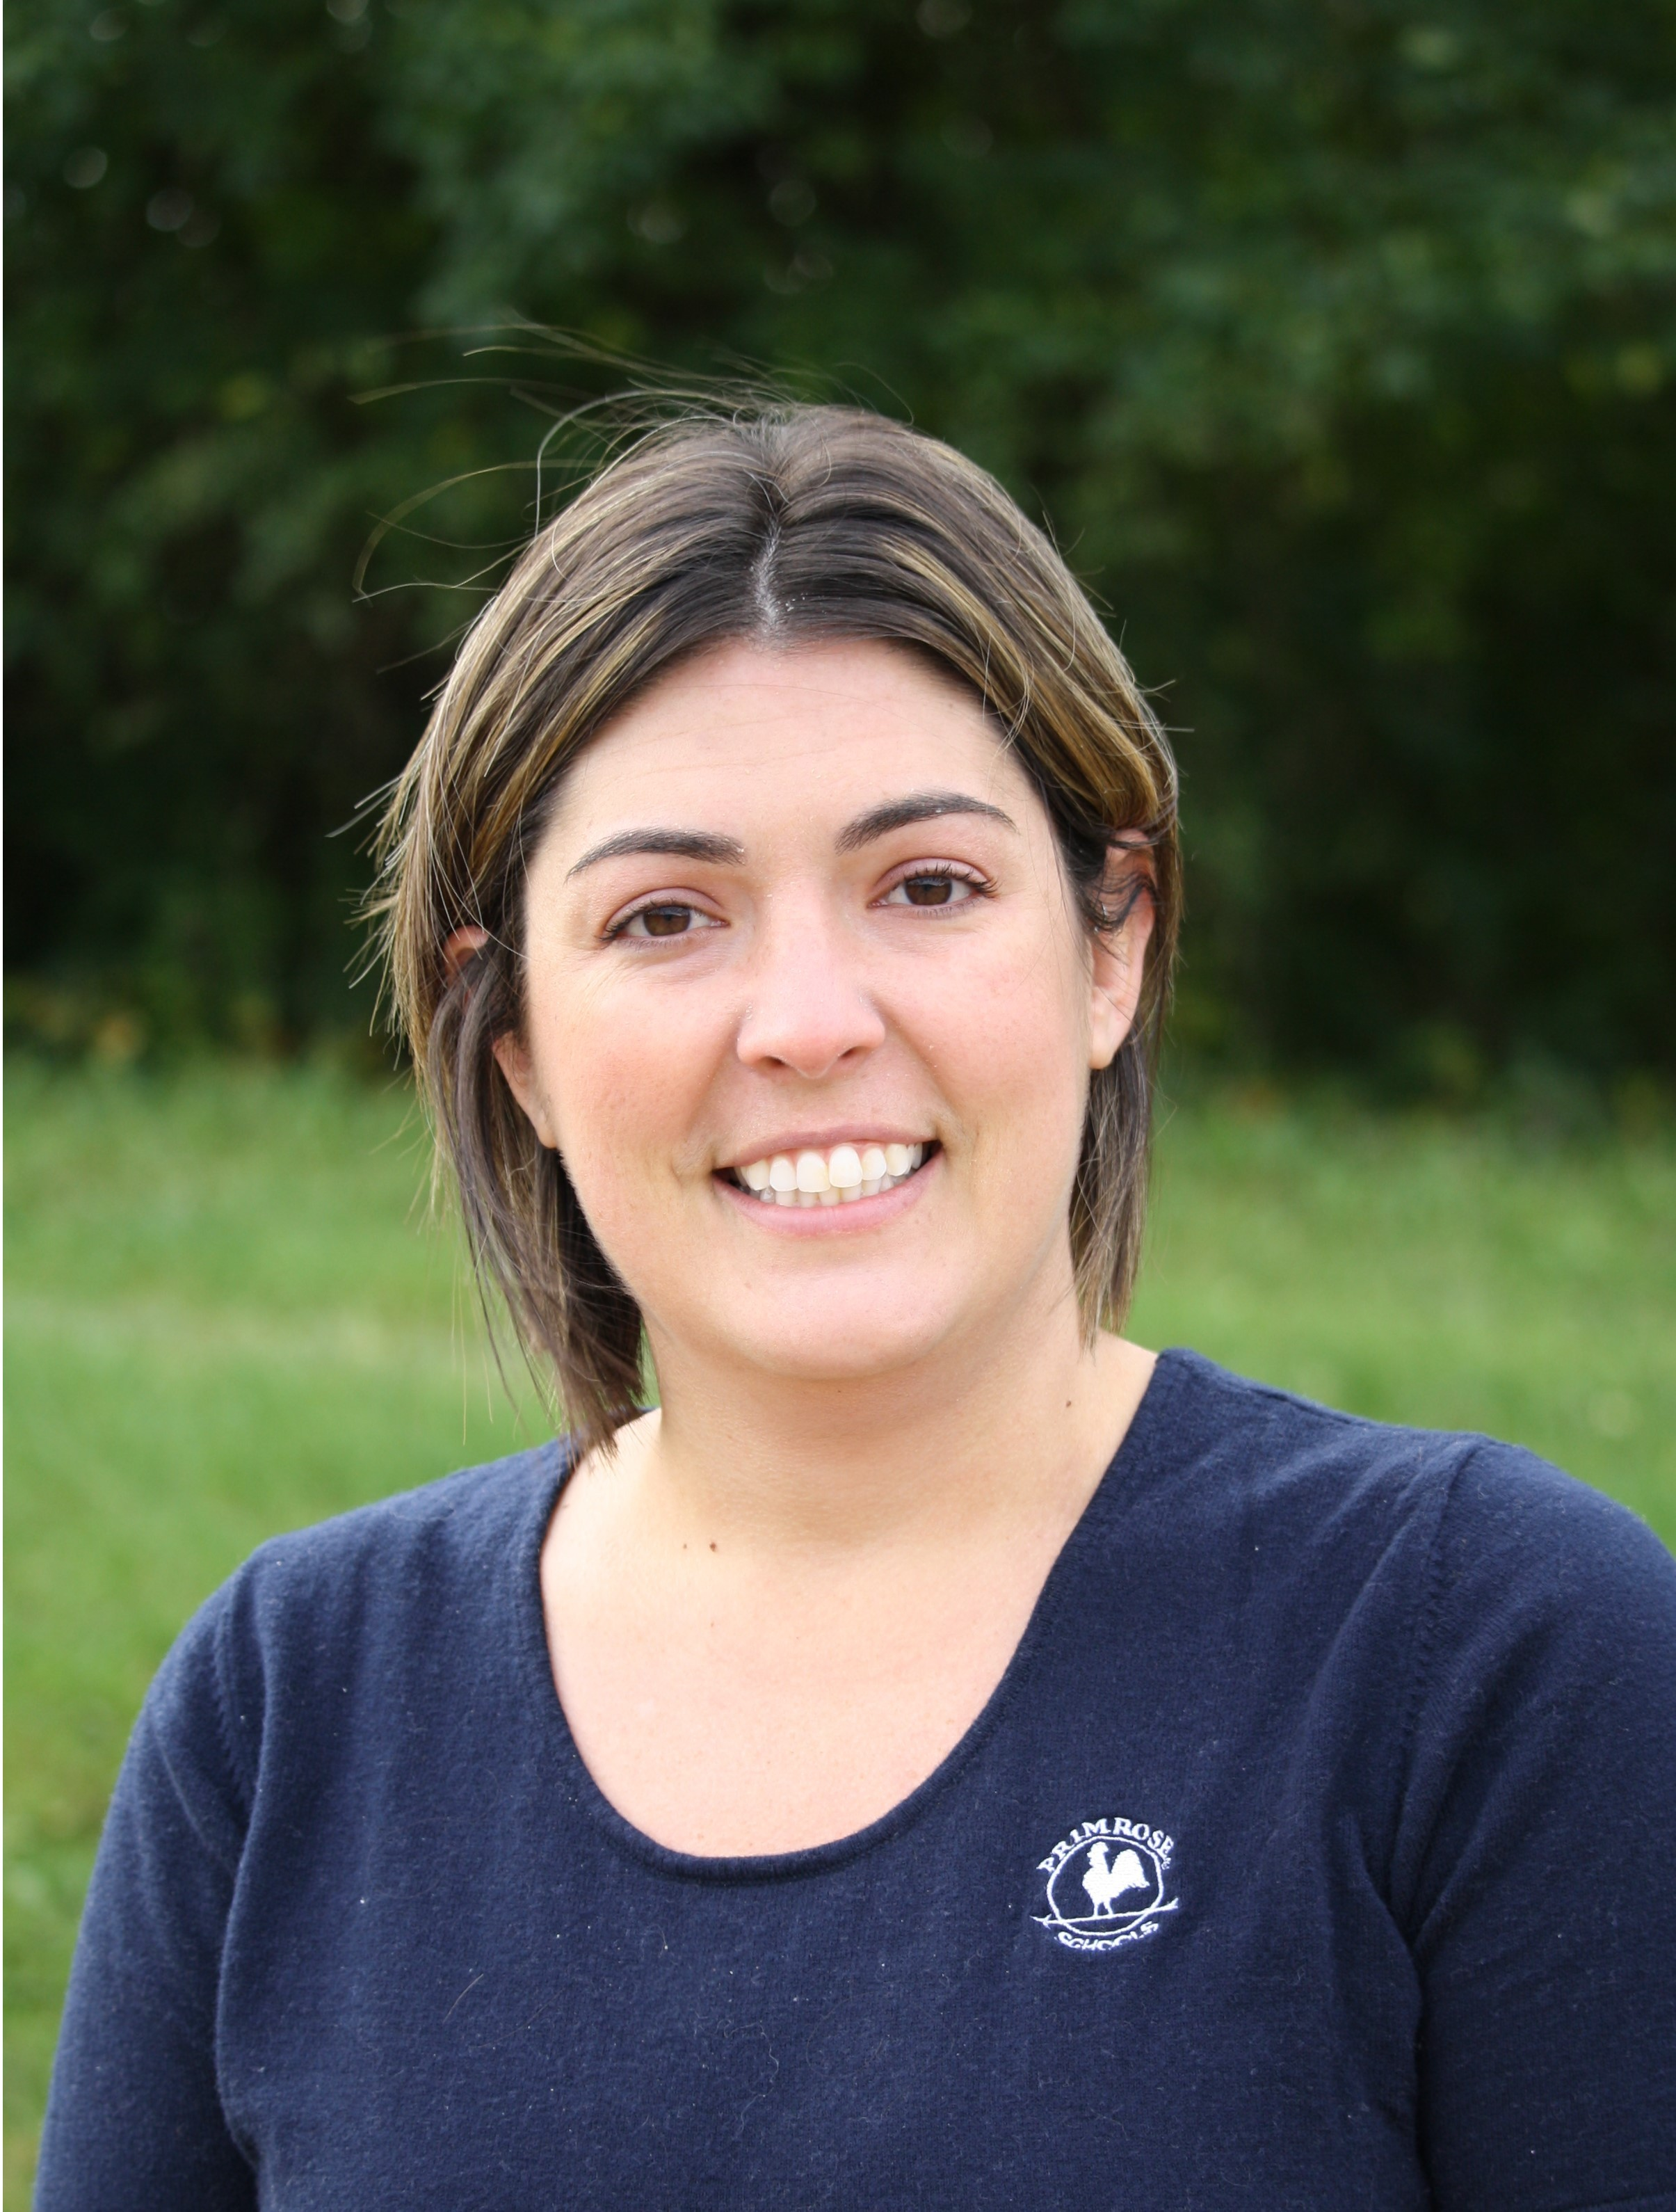 photo of Allyson Zimmerman our director